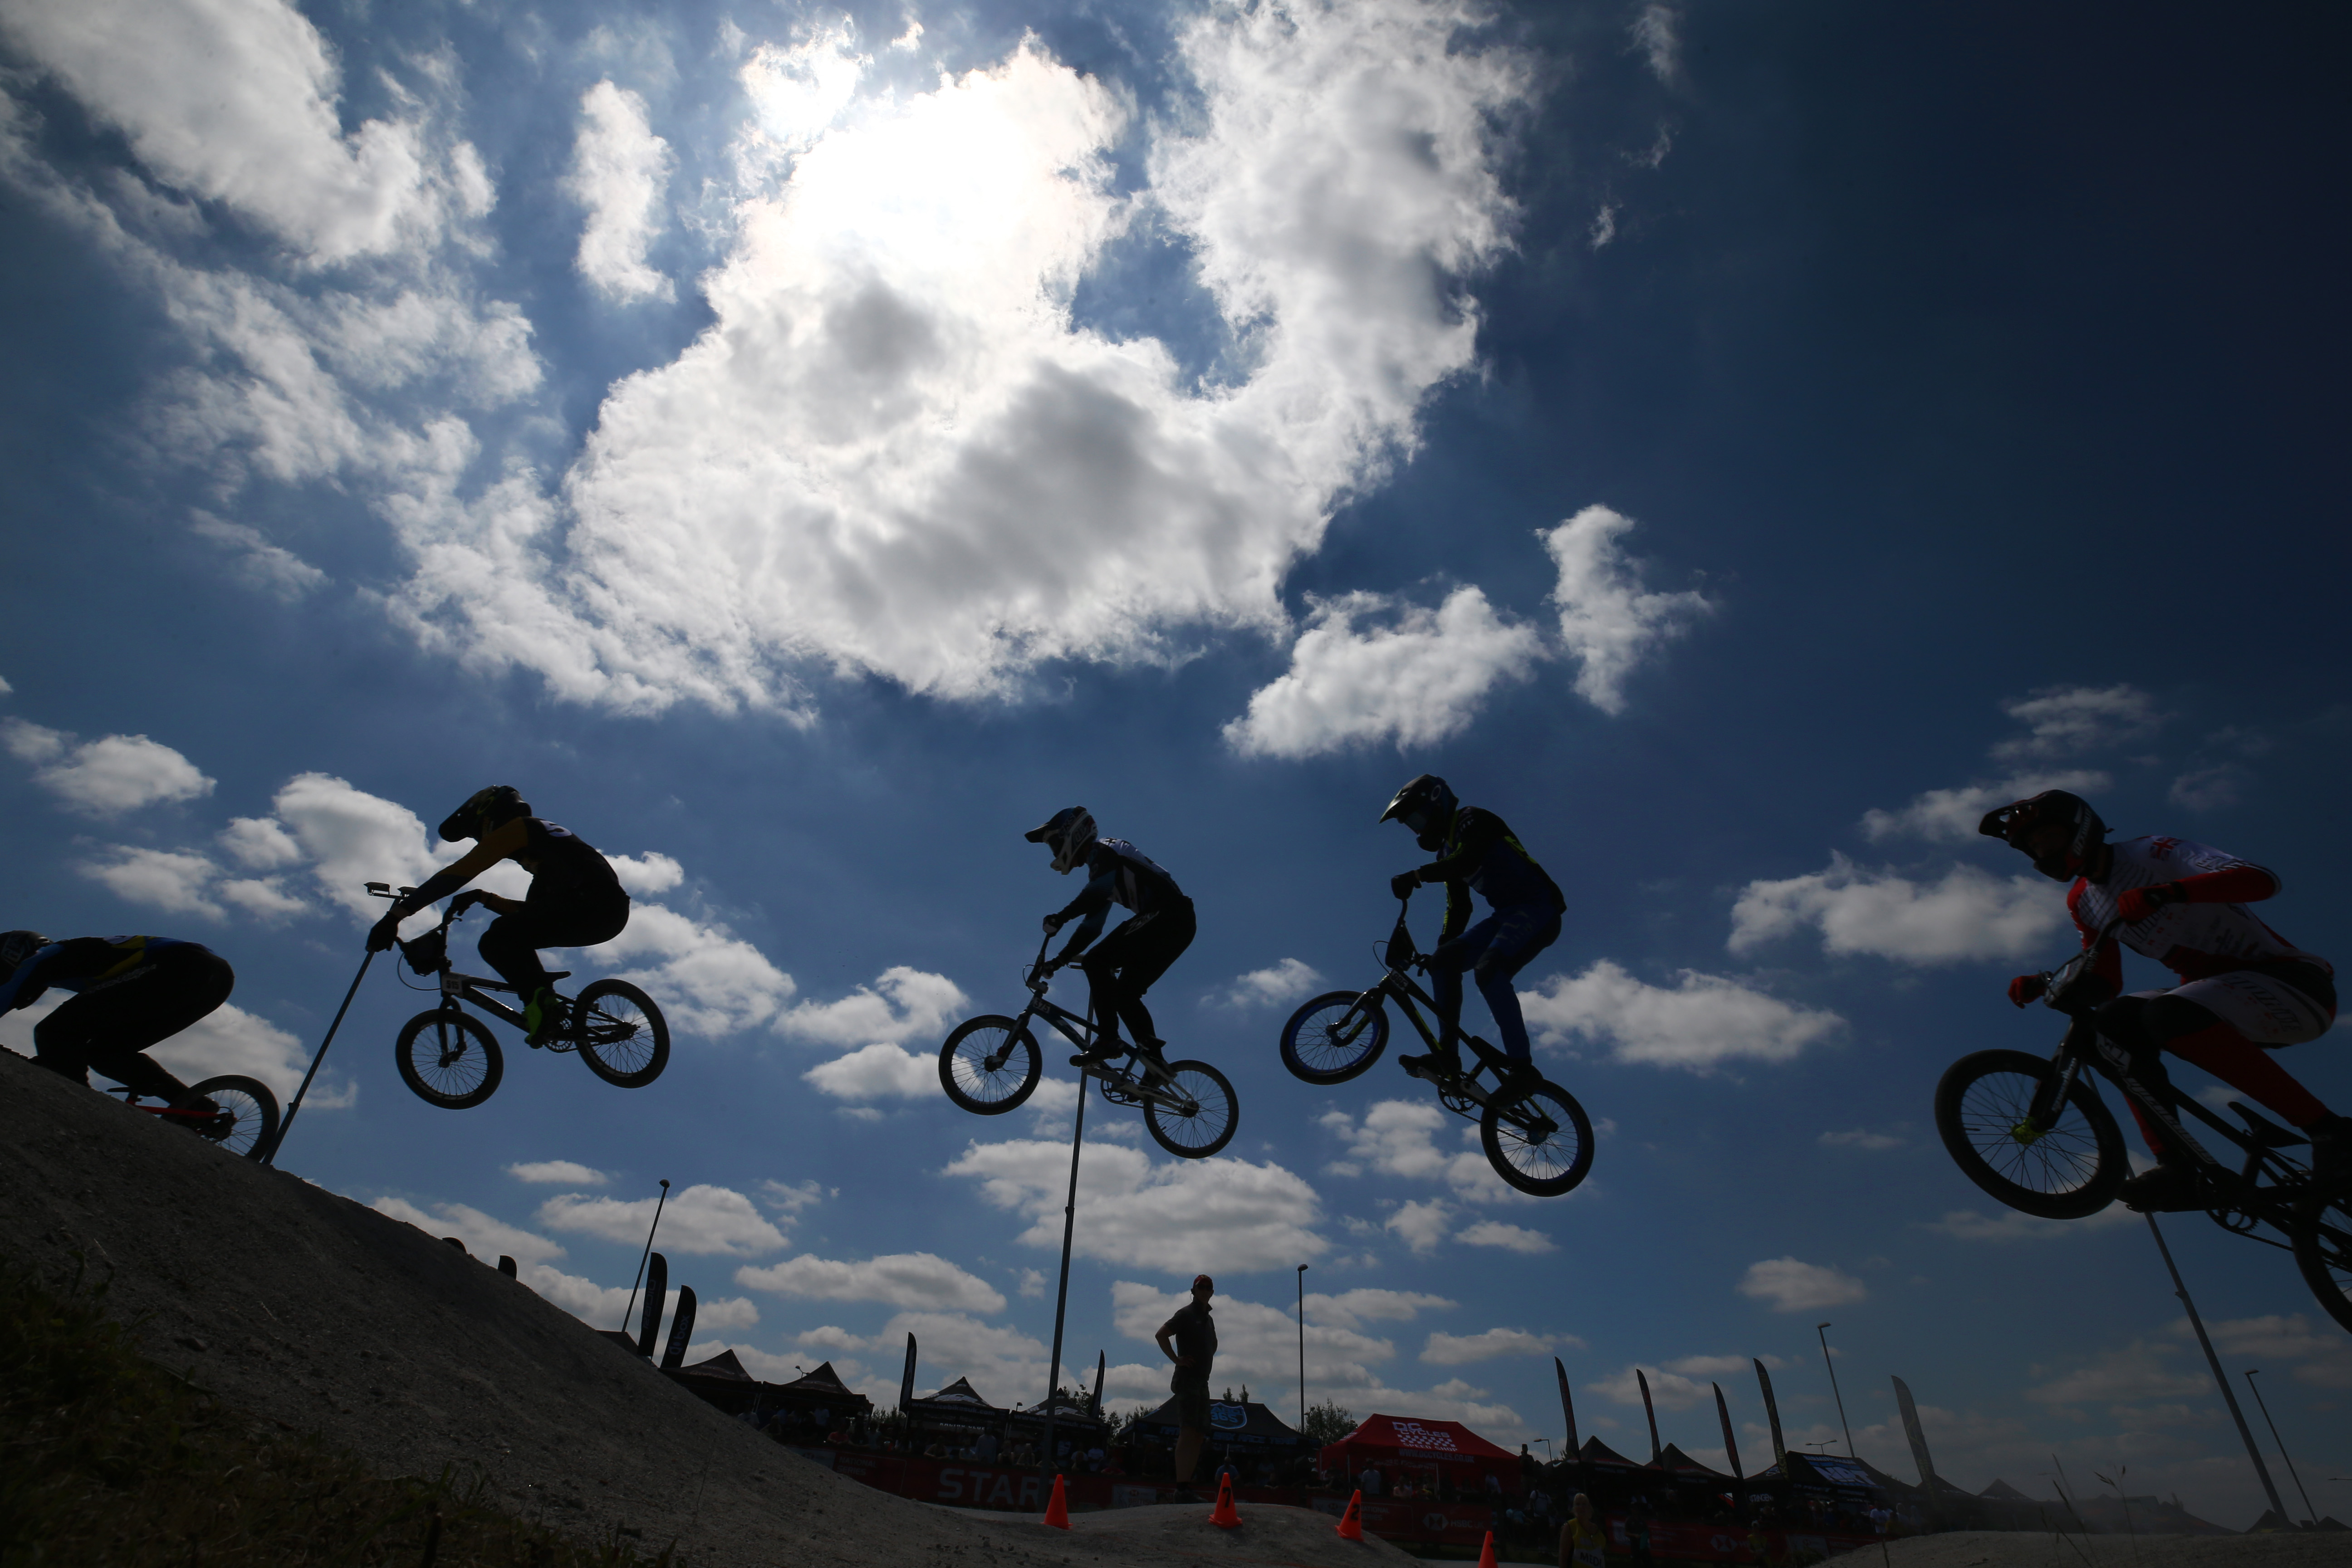 <p>GRAVESEND, ENGLAND - JUNE 13: Riders in qualifying rounds of round two of the HSBC BMX National Series at Cyclopark BMX track on June 13, 2021 in Gravesend, England. (Photo by Cameron Smith/Getty Images)</p>